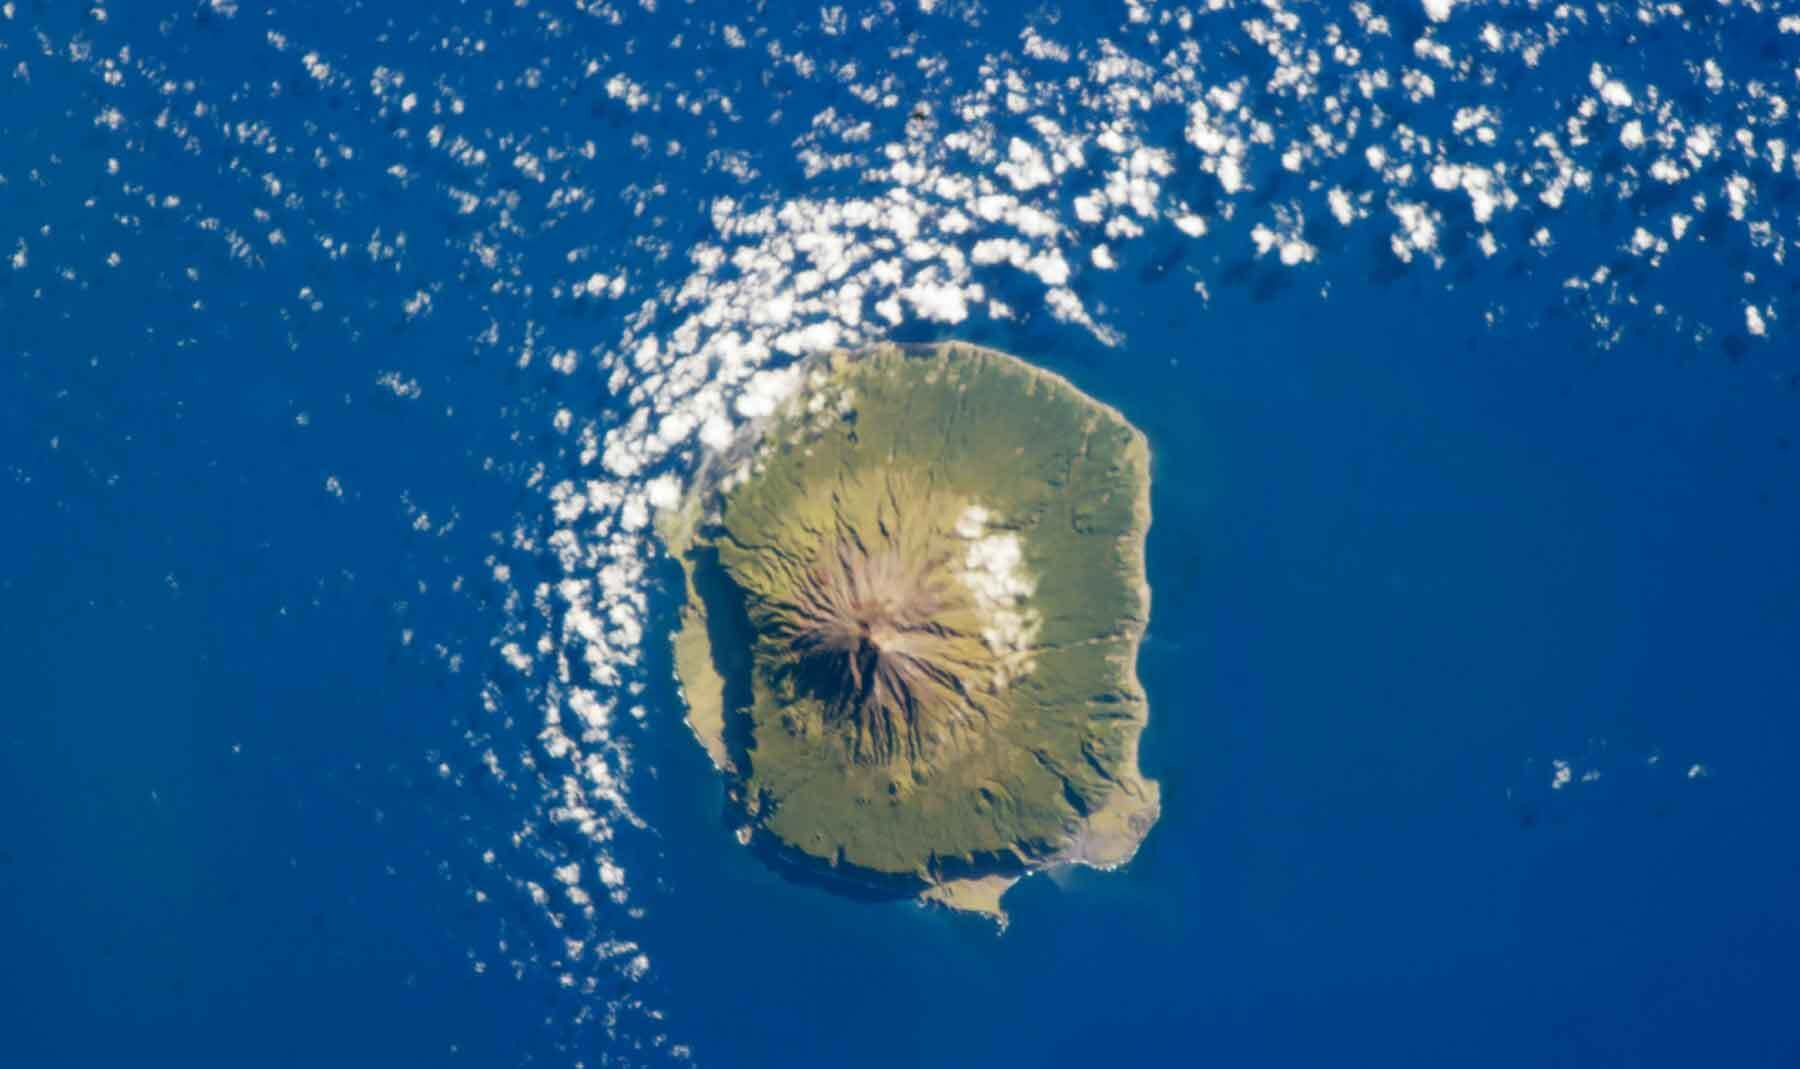 Tristan da Cunha from the International Space Station.